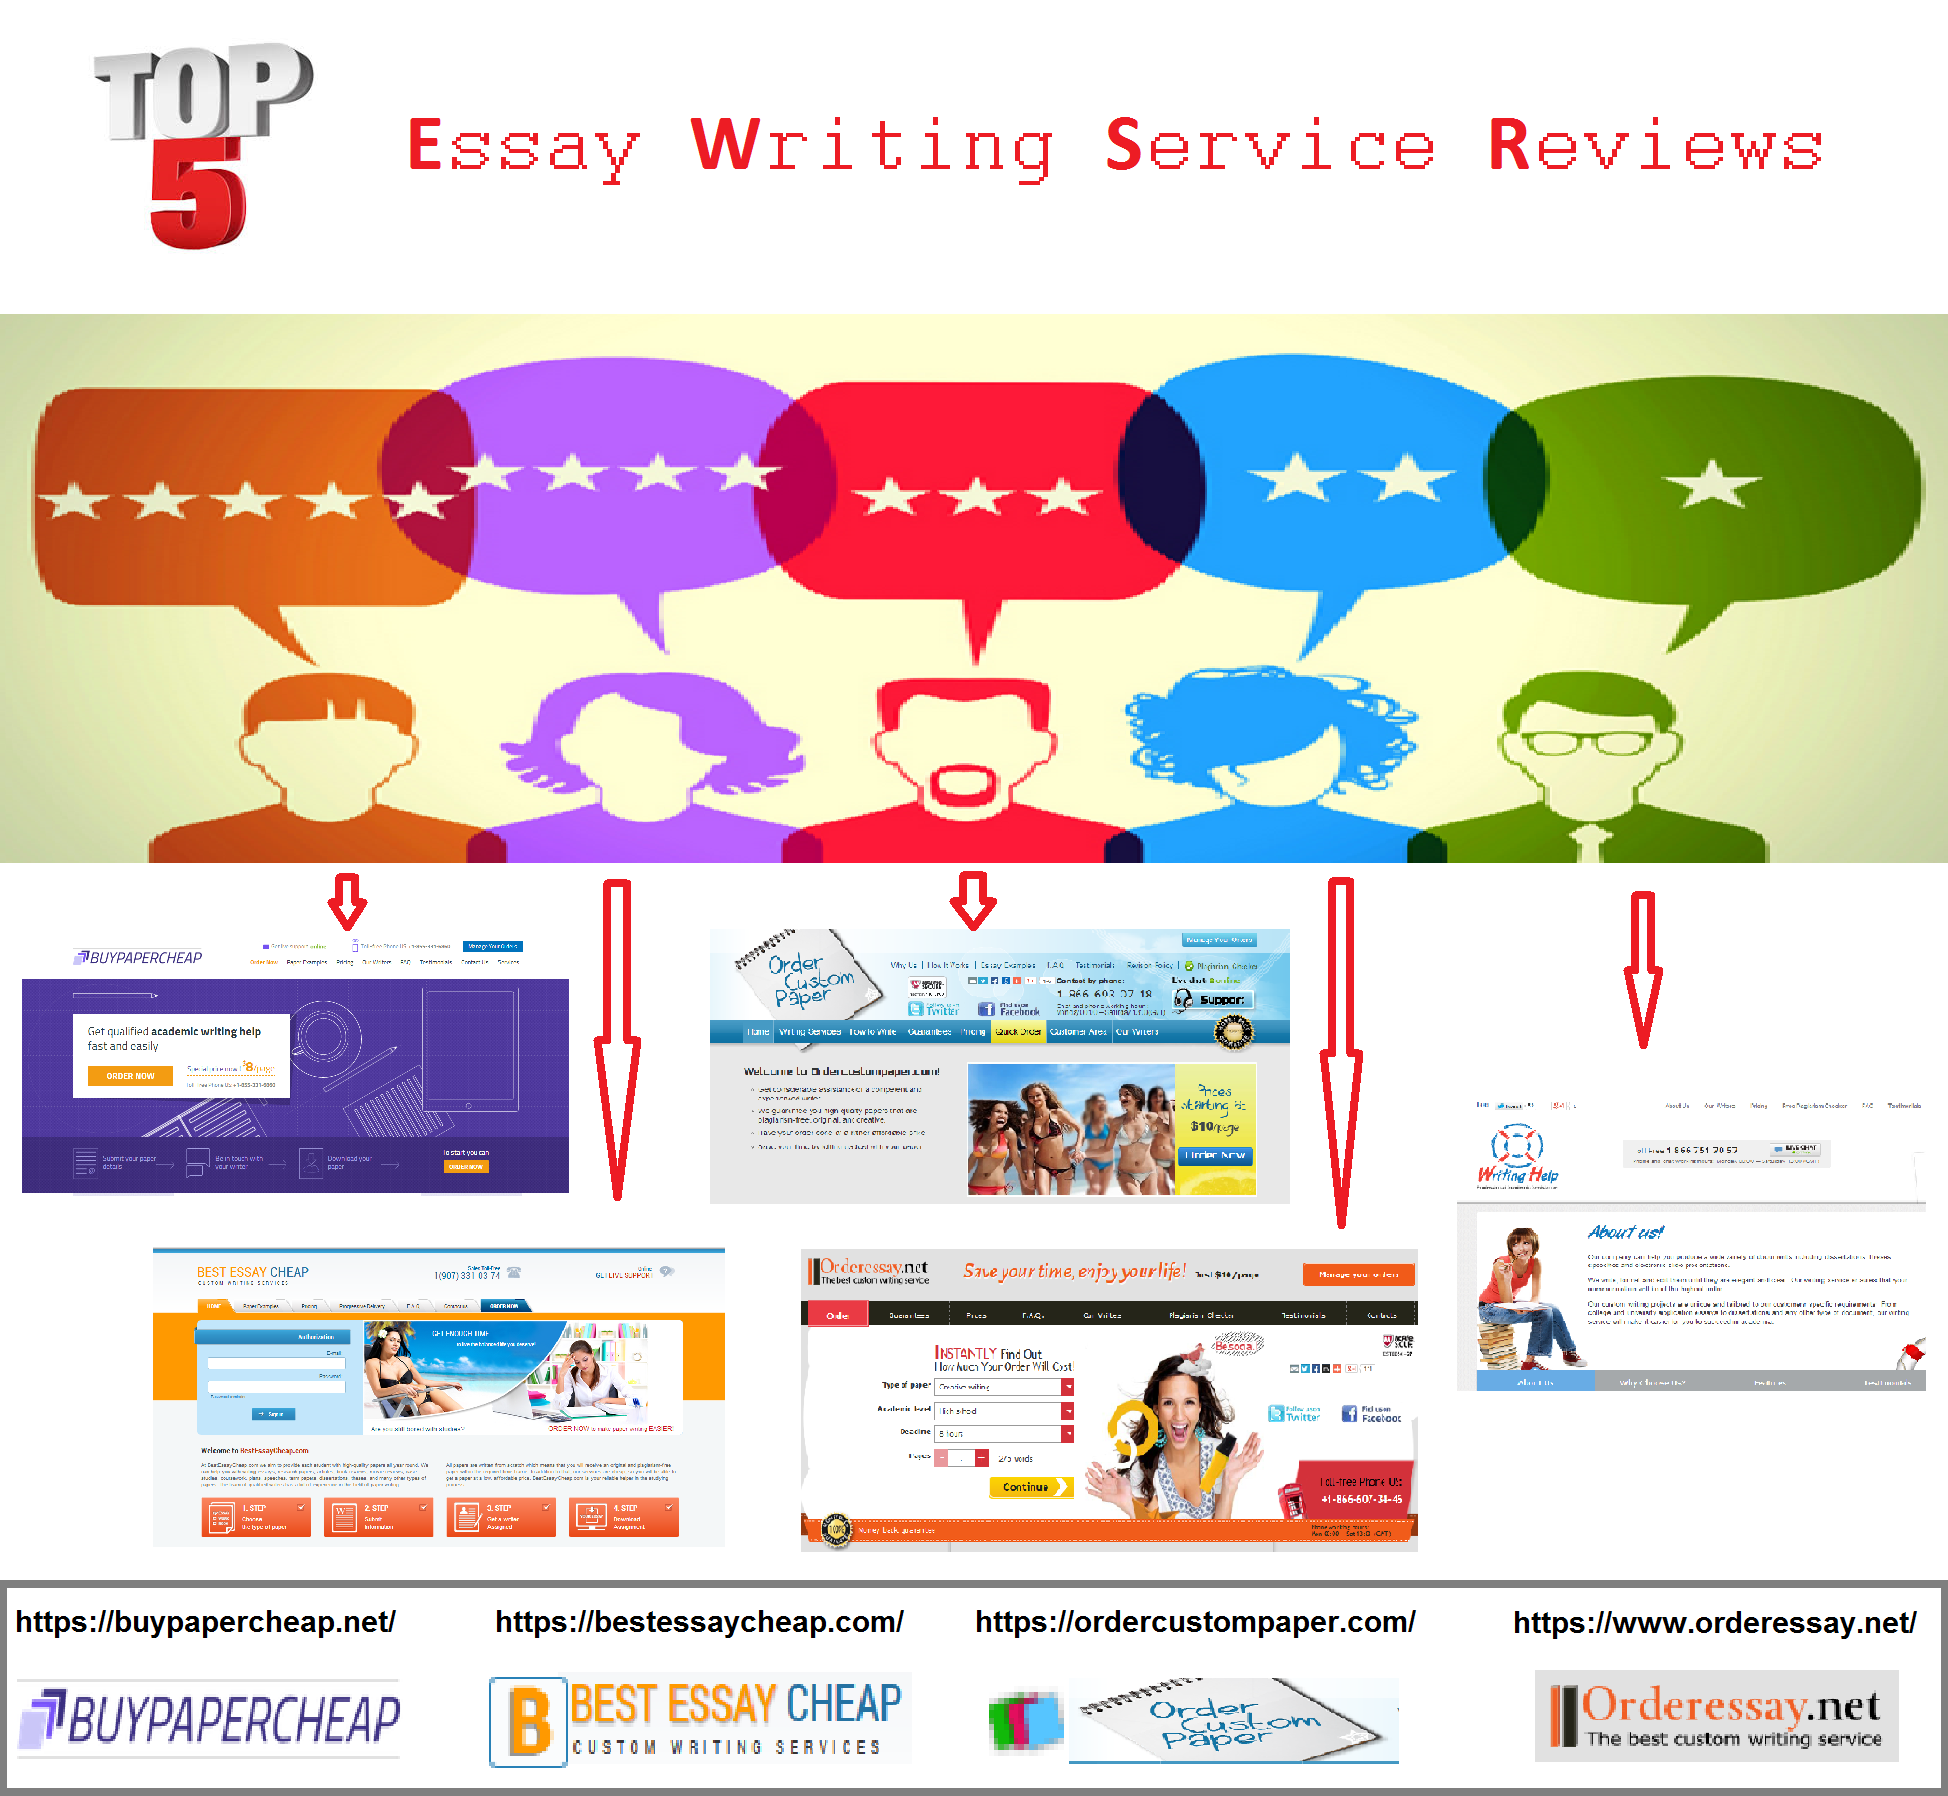 001 Essay Writing Service Reviews Custom Services From Best Essays Paper Sites Company Ideas Of Sale Discount Br Singular Pro Uk Top Full